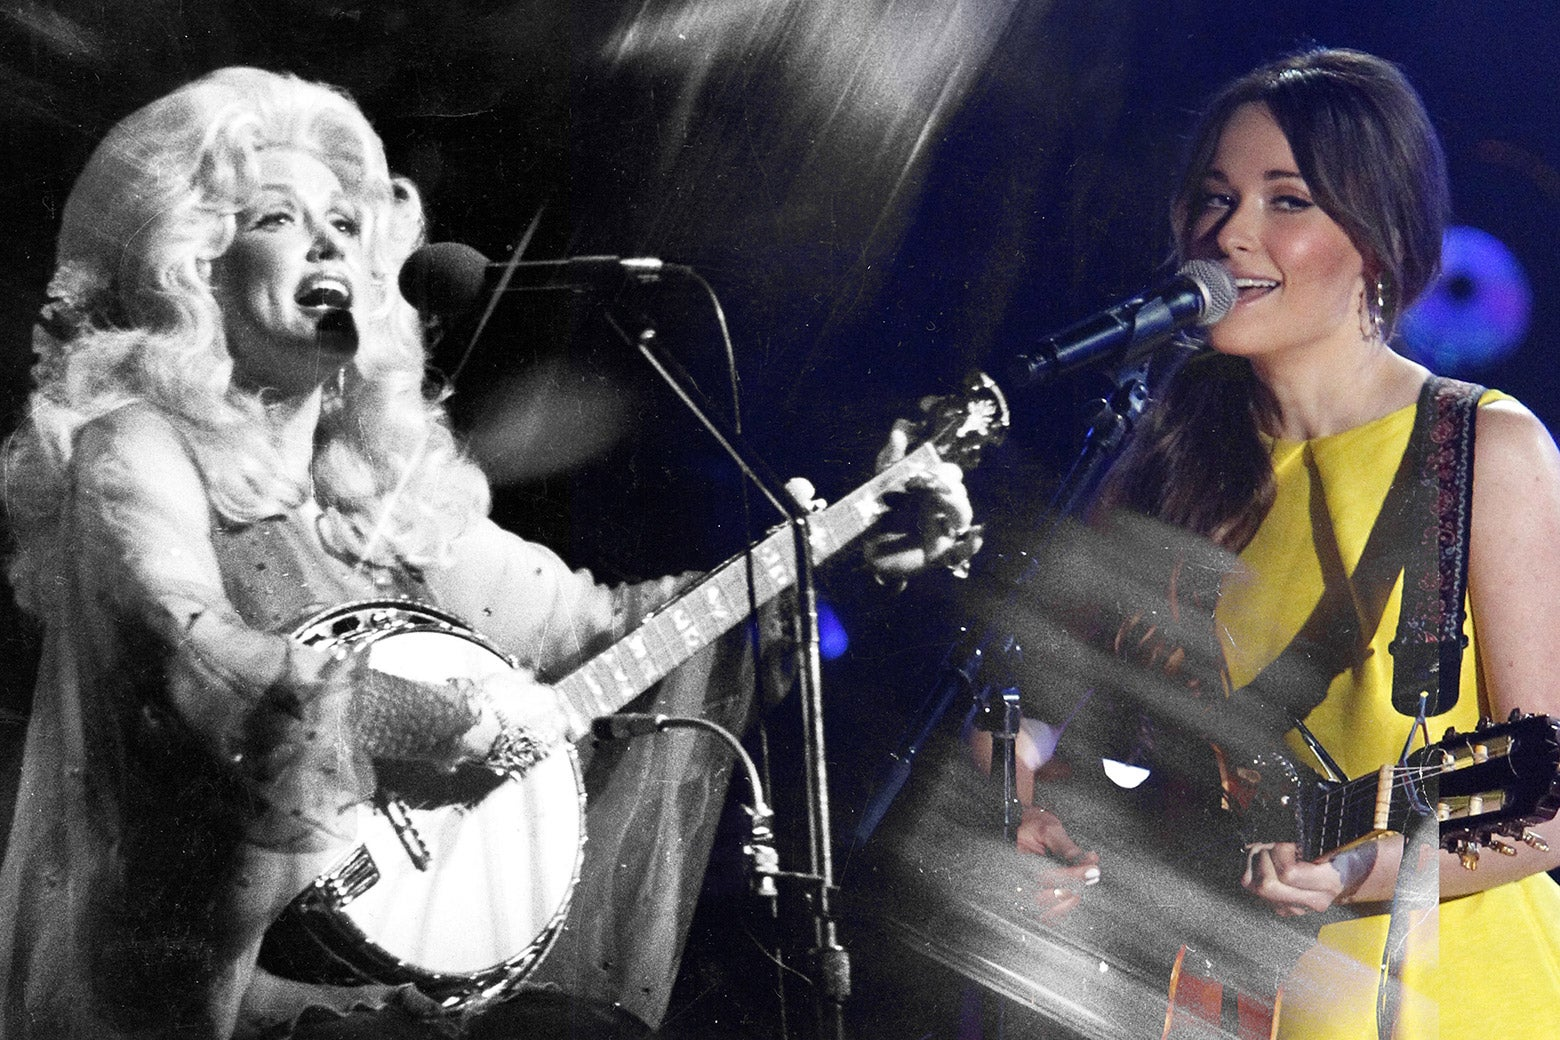 Dolly Parton and Kacey Musgraves.